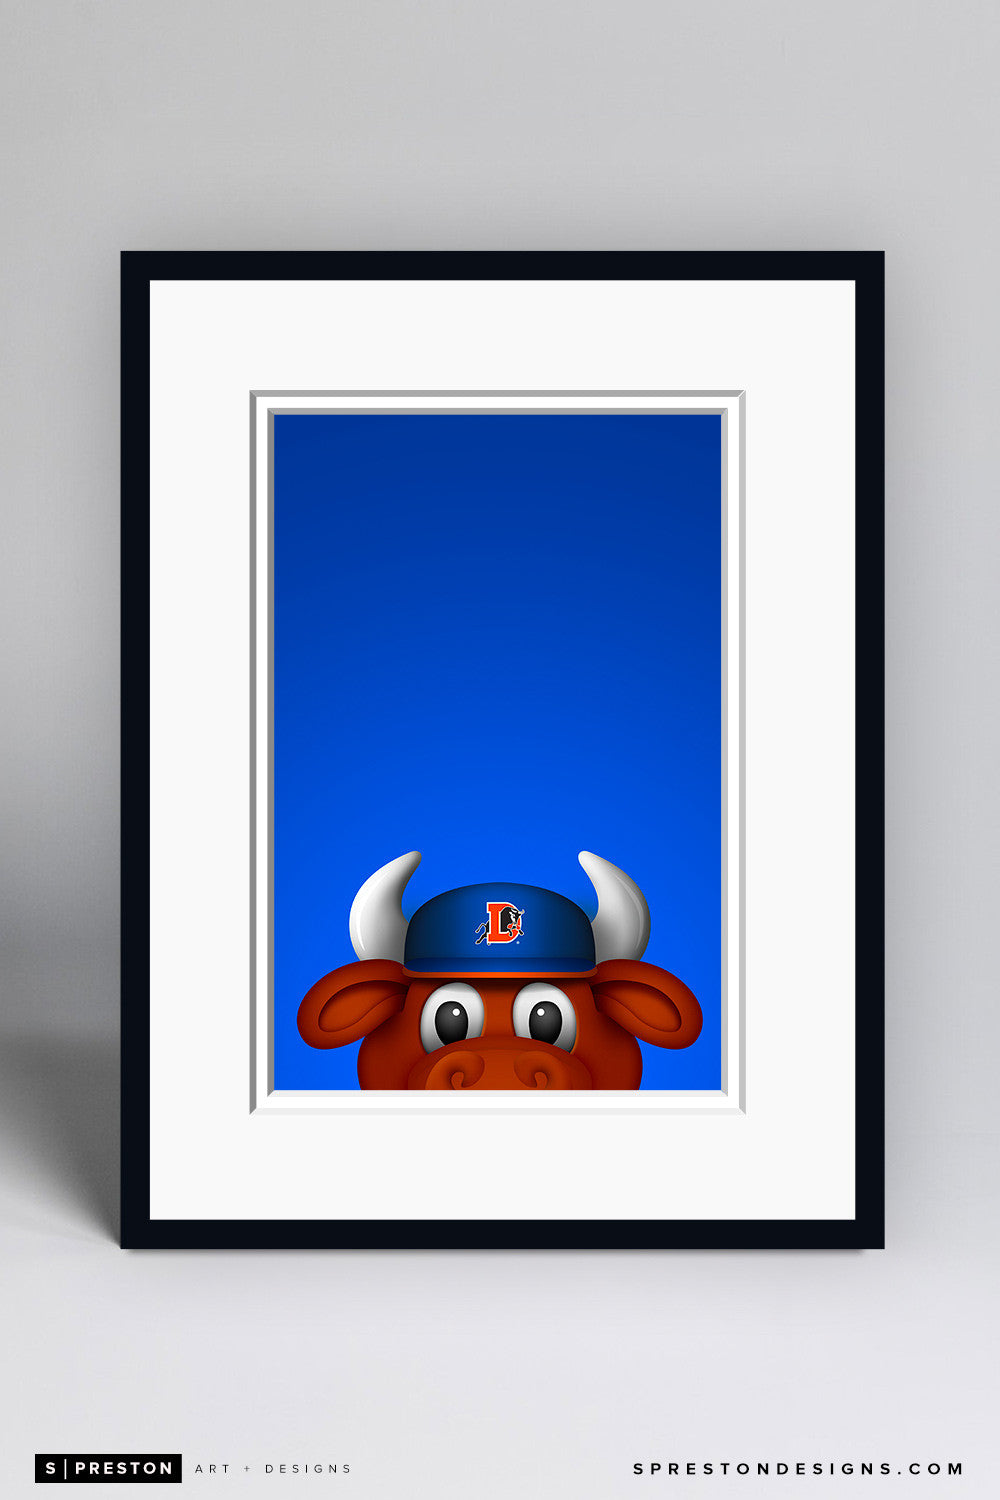 Minimalist Wool E. Bull Art Print - Durham Bulls - S. Preston Art + Designs